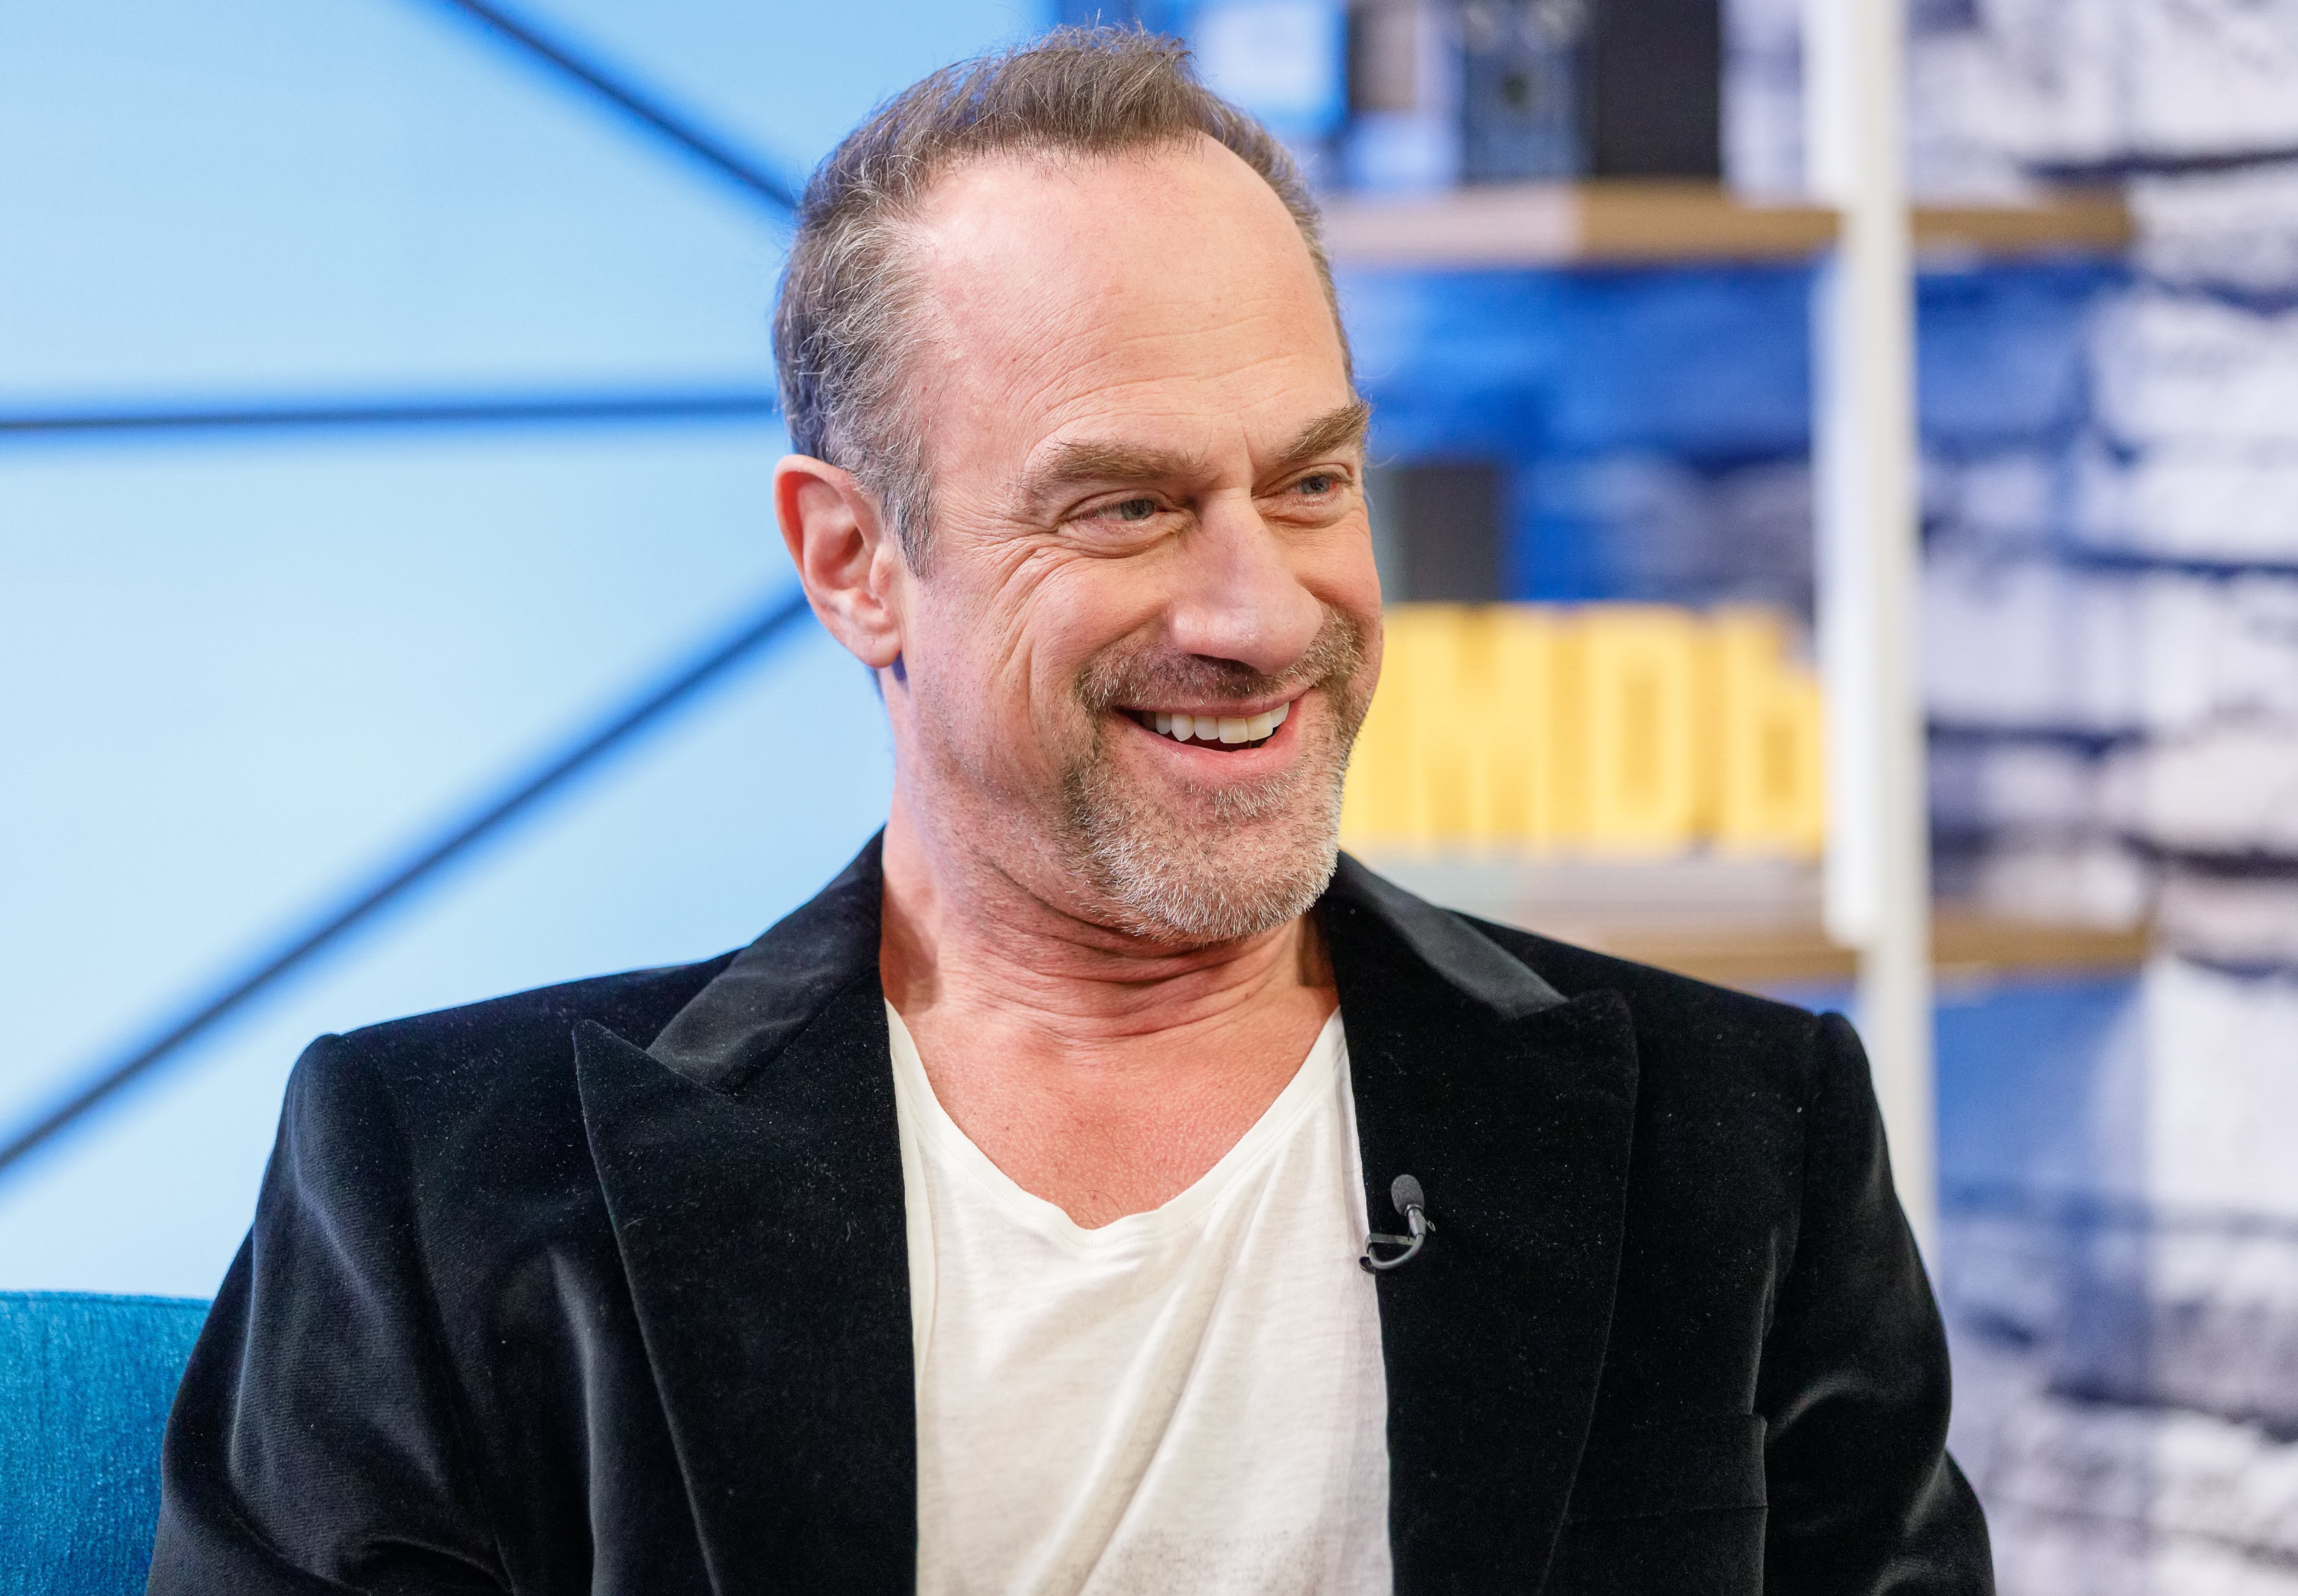 Christopher Meloni visits 'The IMDb Show' on March 26, 2019 in Studio City, California. | Source: Getty Images